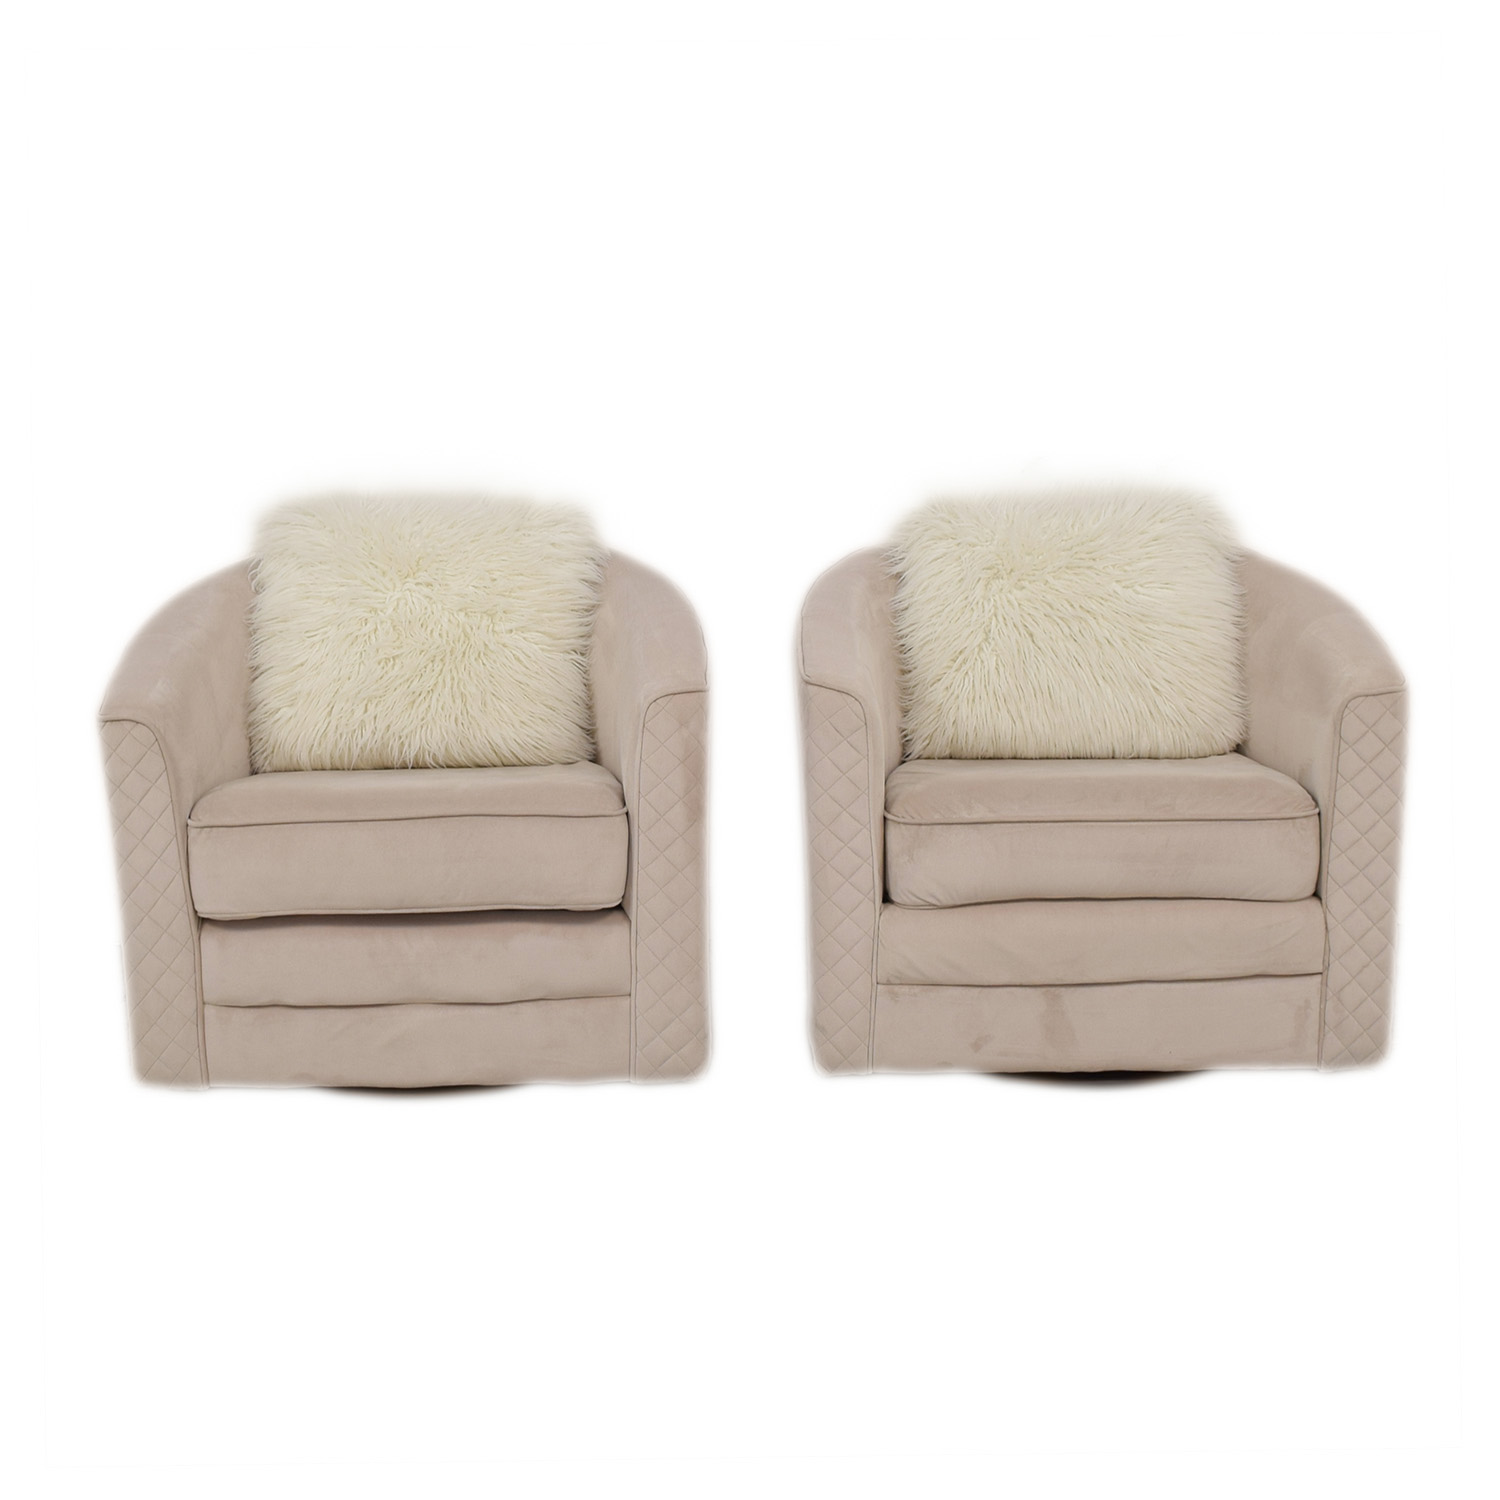 Wayfair Cream Color Swivel Chairs sale